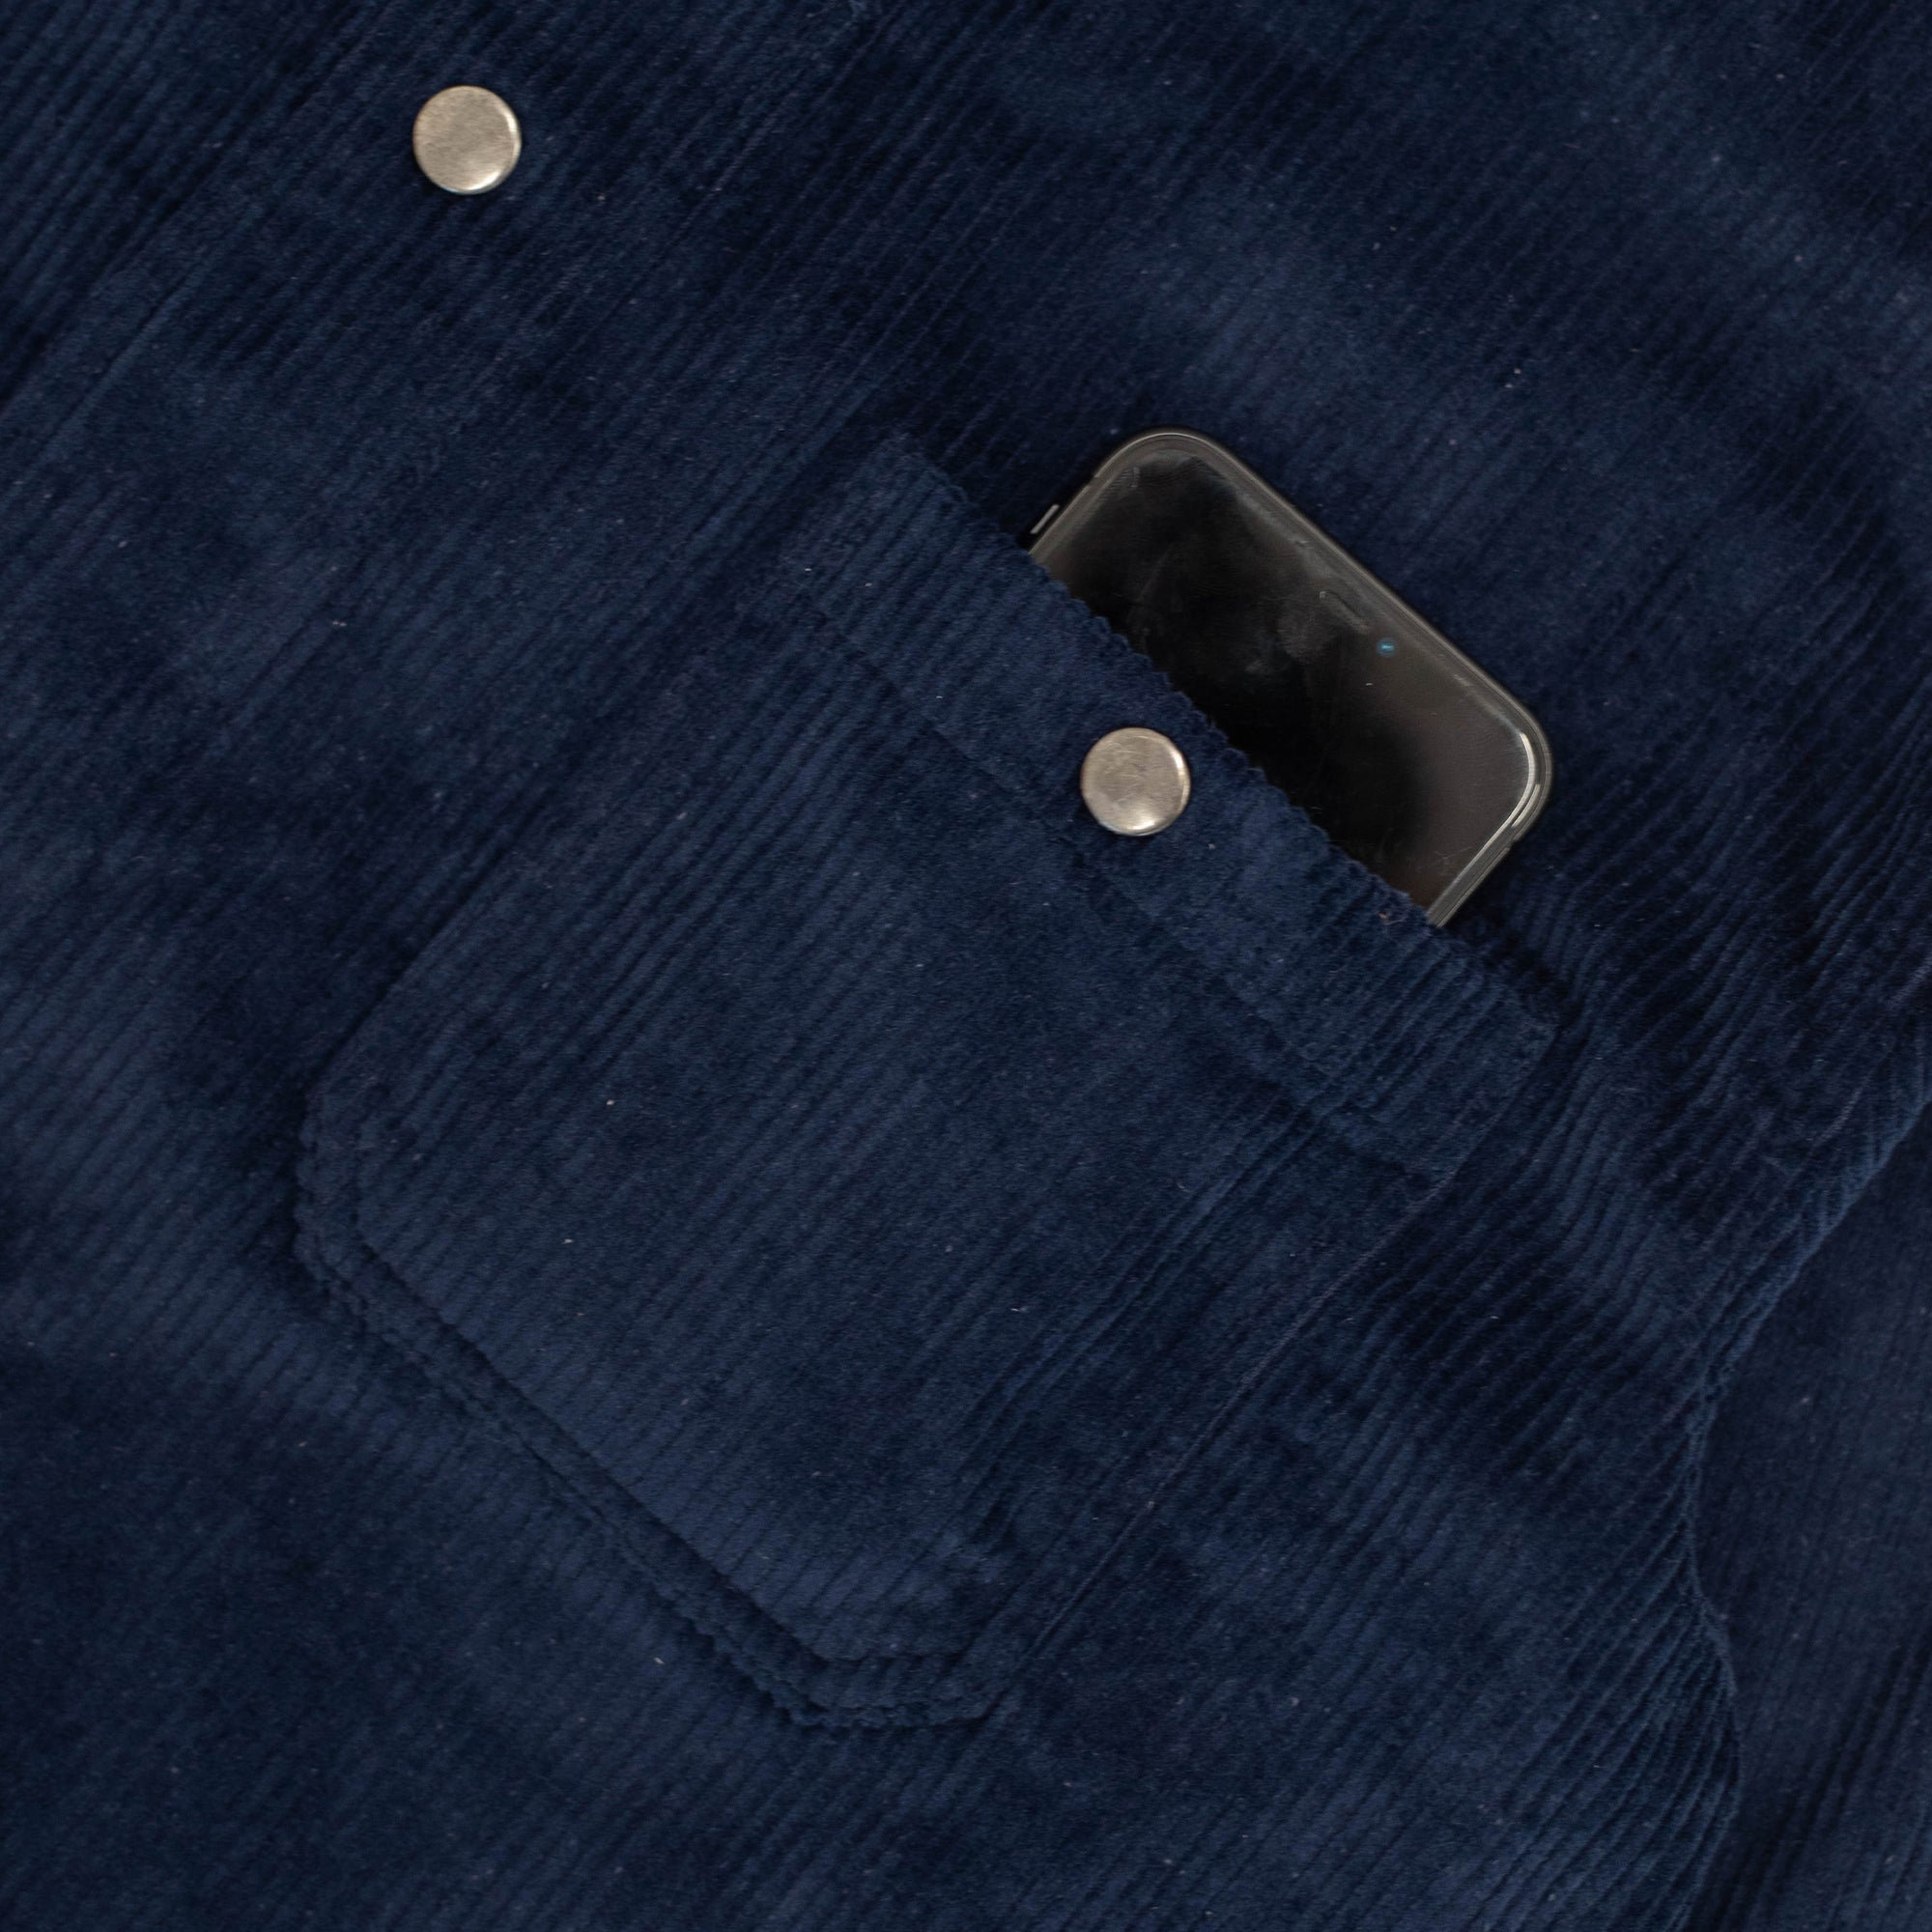 Load image into Gallery viewer, Shop Jacket Navy Corduroy | CHECKS DOWNTOWN